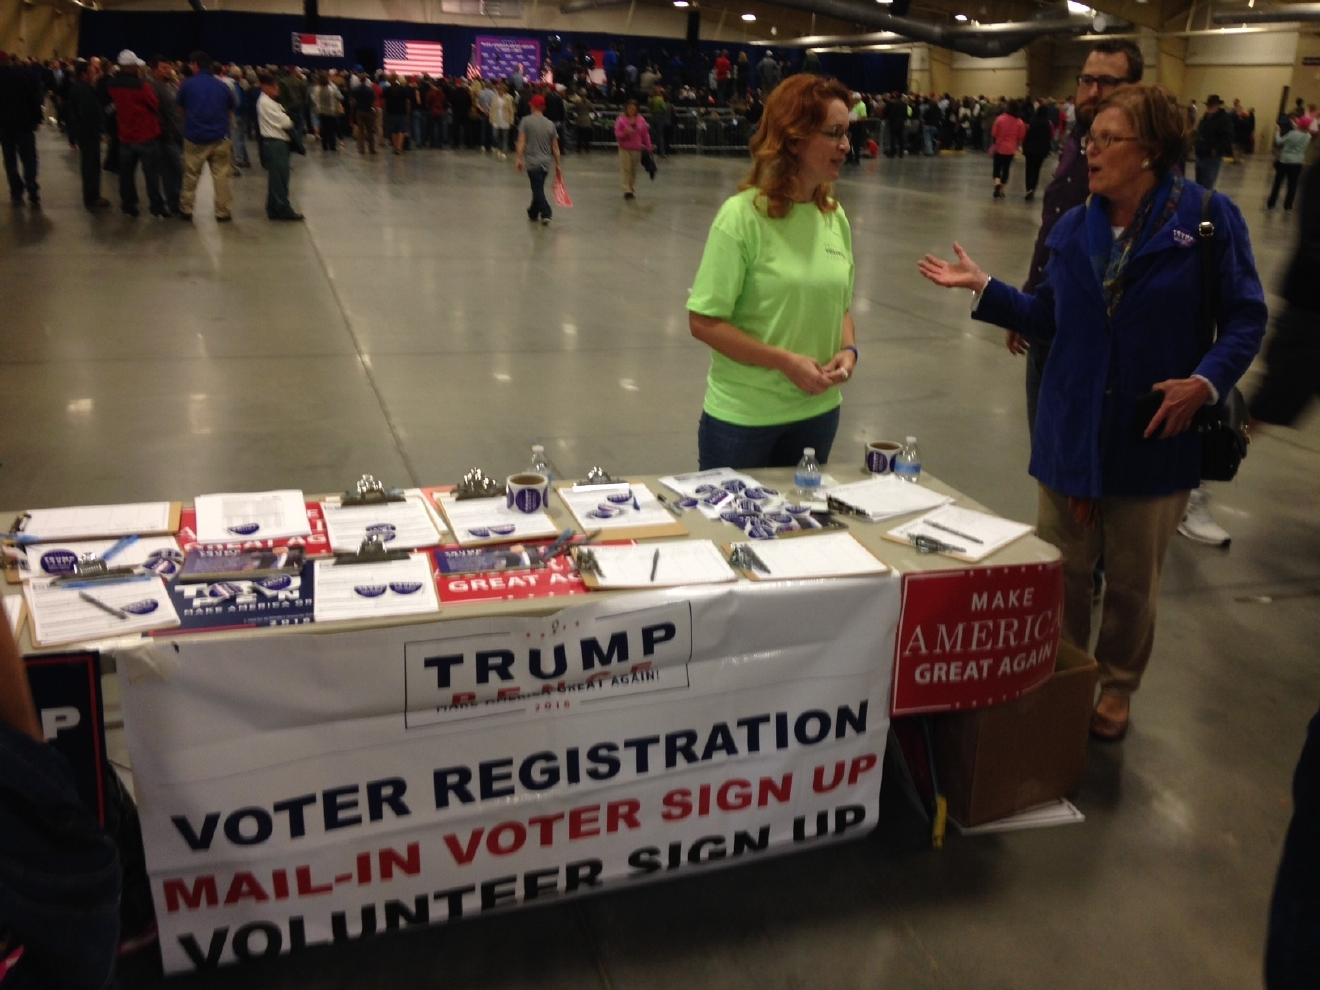 The Donald Trump rally in Fletcher. (Photo credit: WLOS staff)